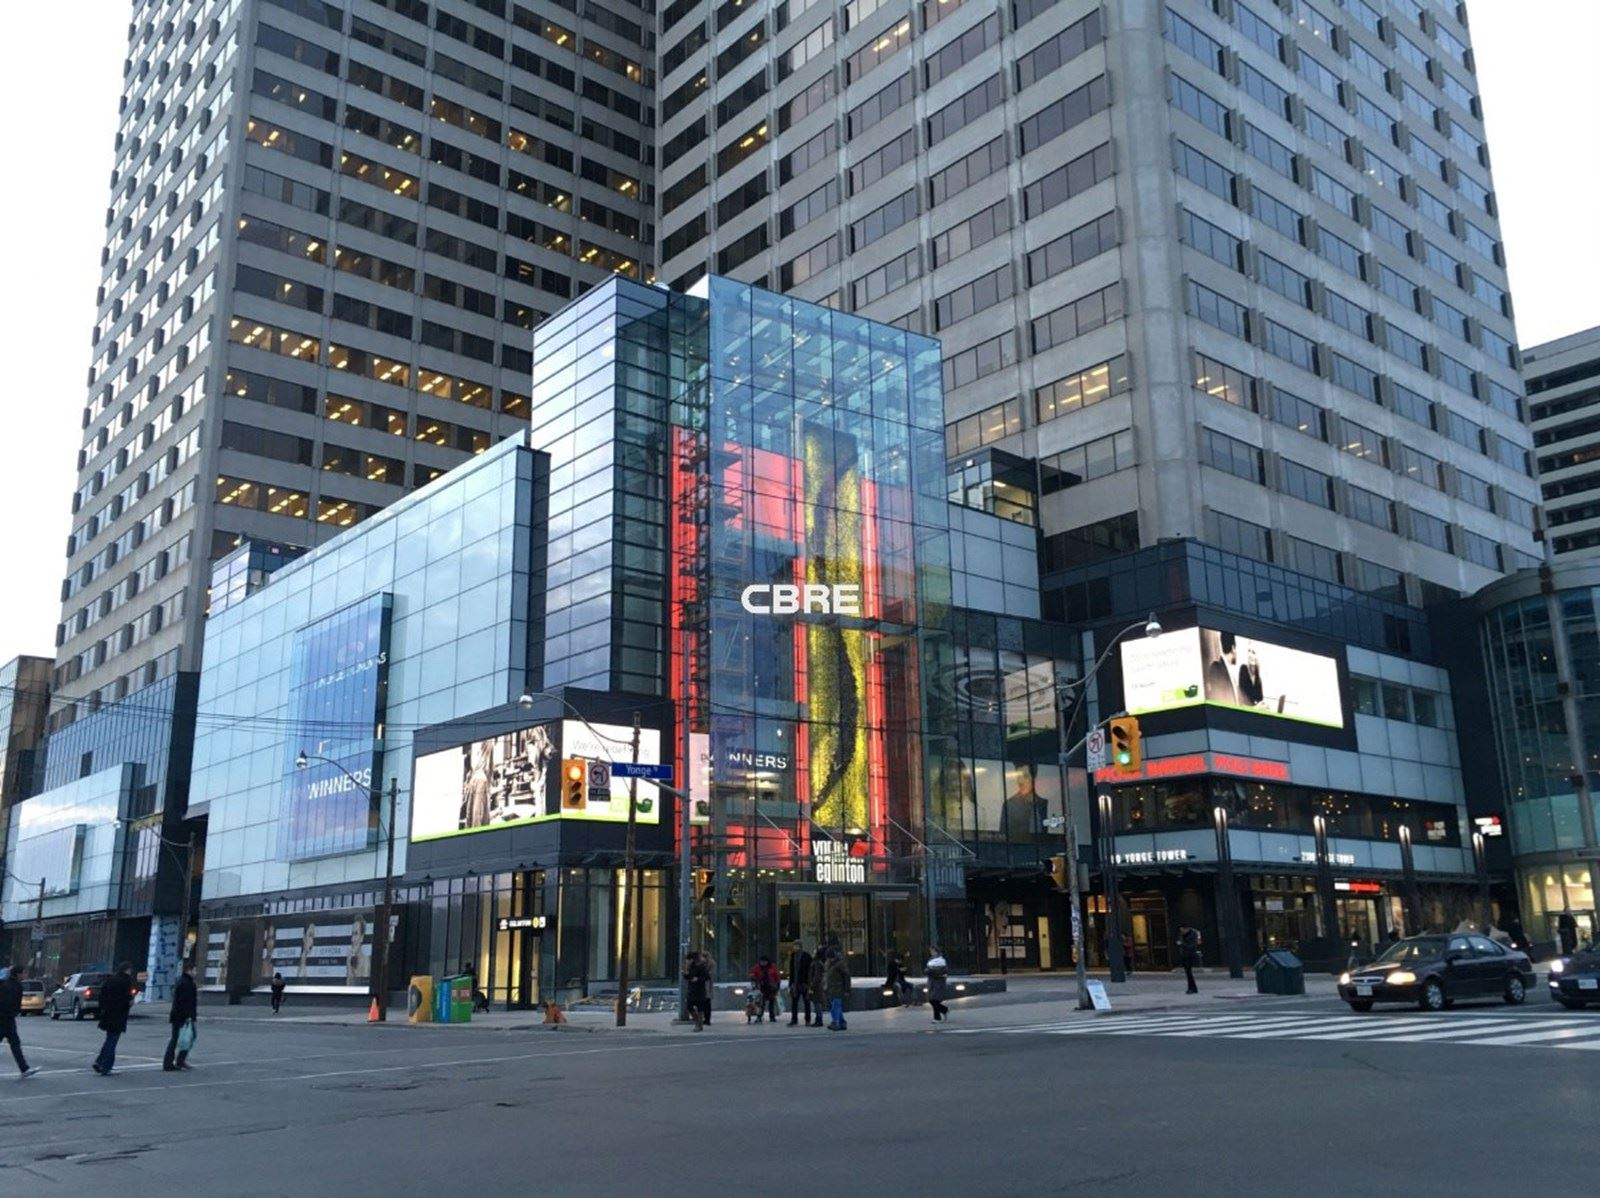 Exterior view of building at 2300 Yonge St. Toronto